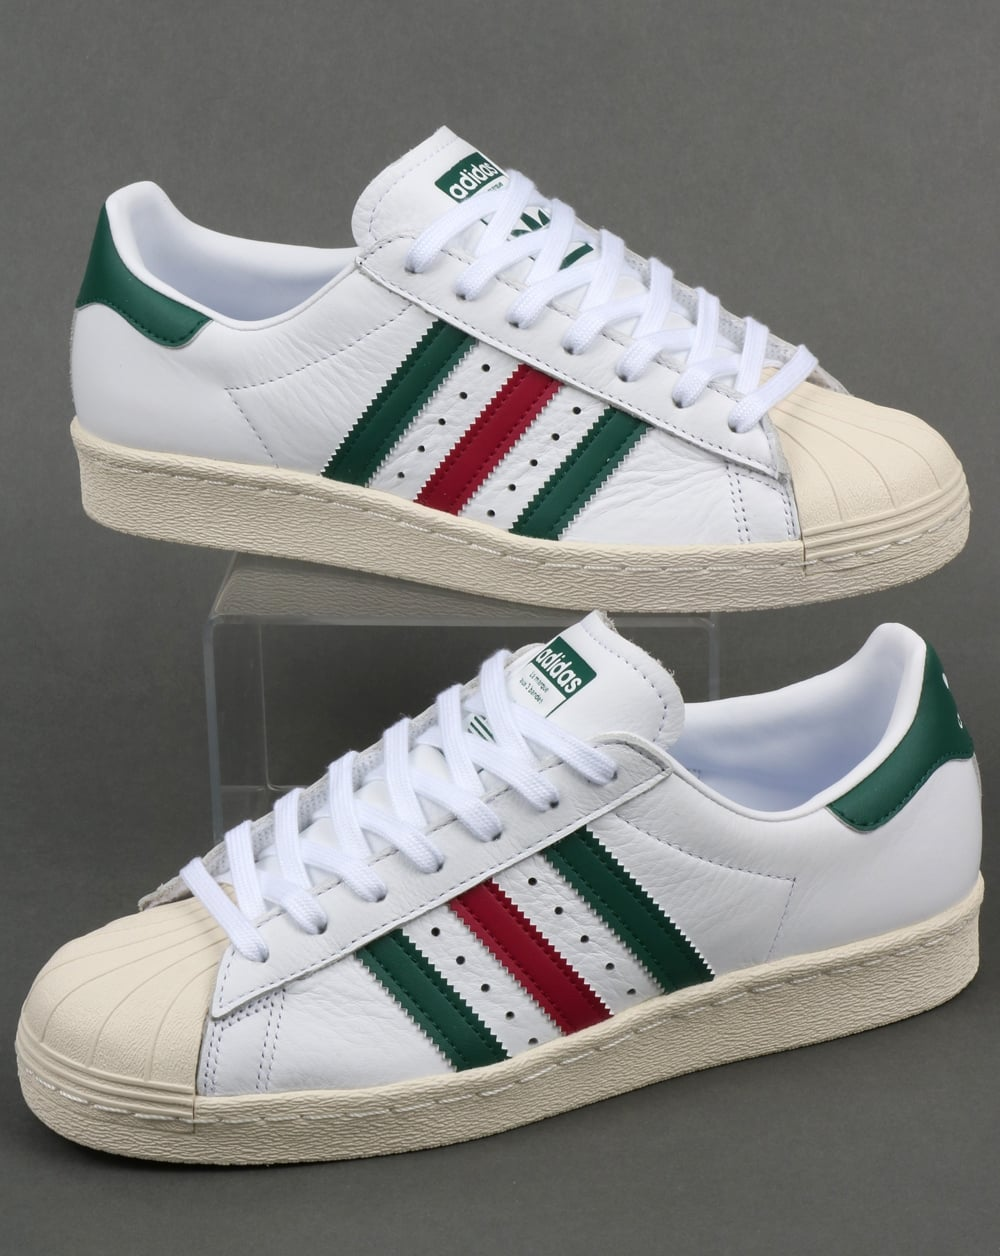 wholesale dealer 092e7 f11b7 Adidas Superstar 80s Trainers White/Green/Ruby